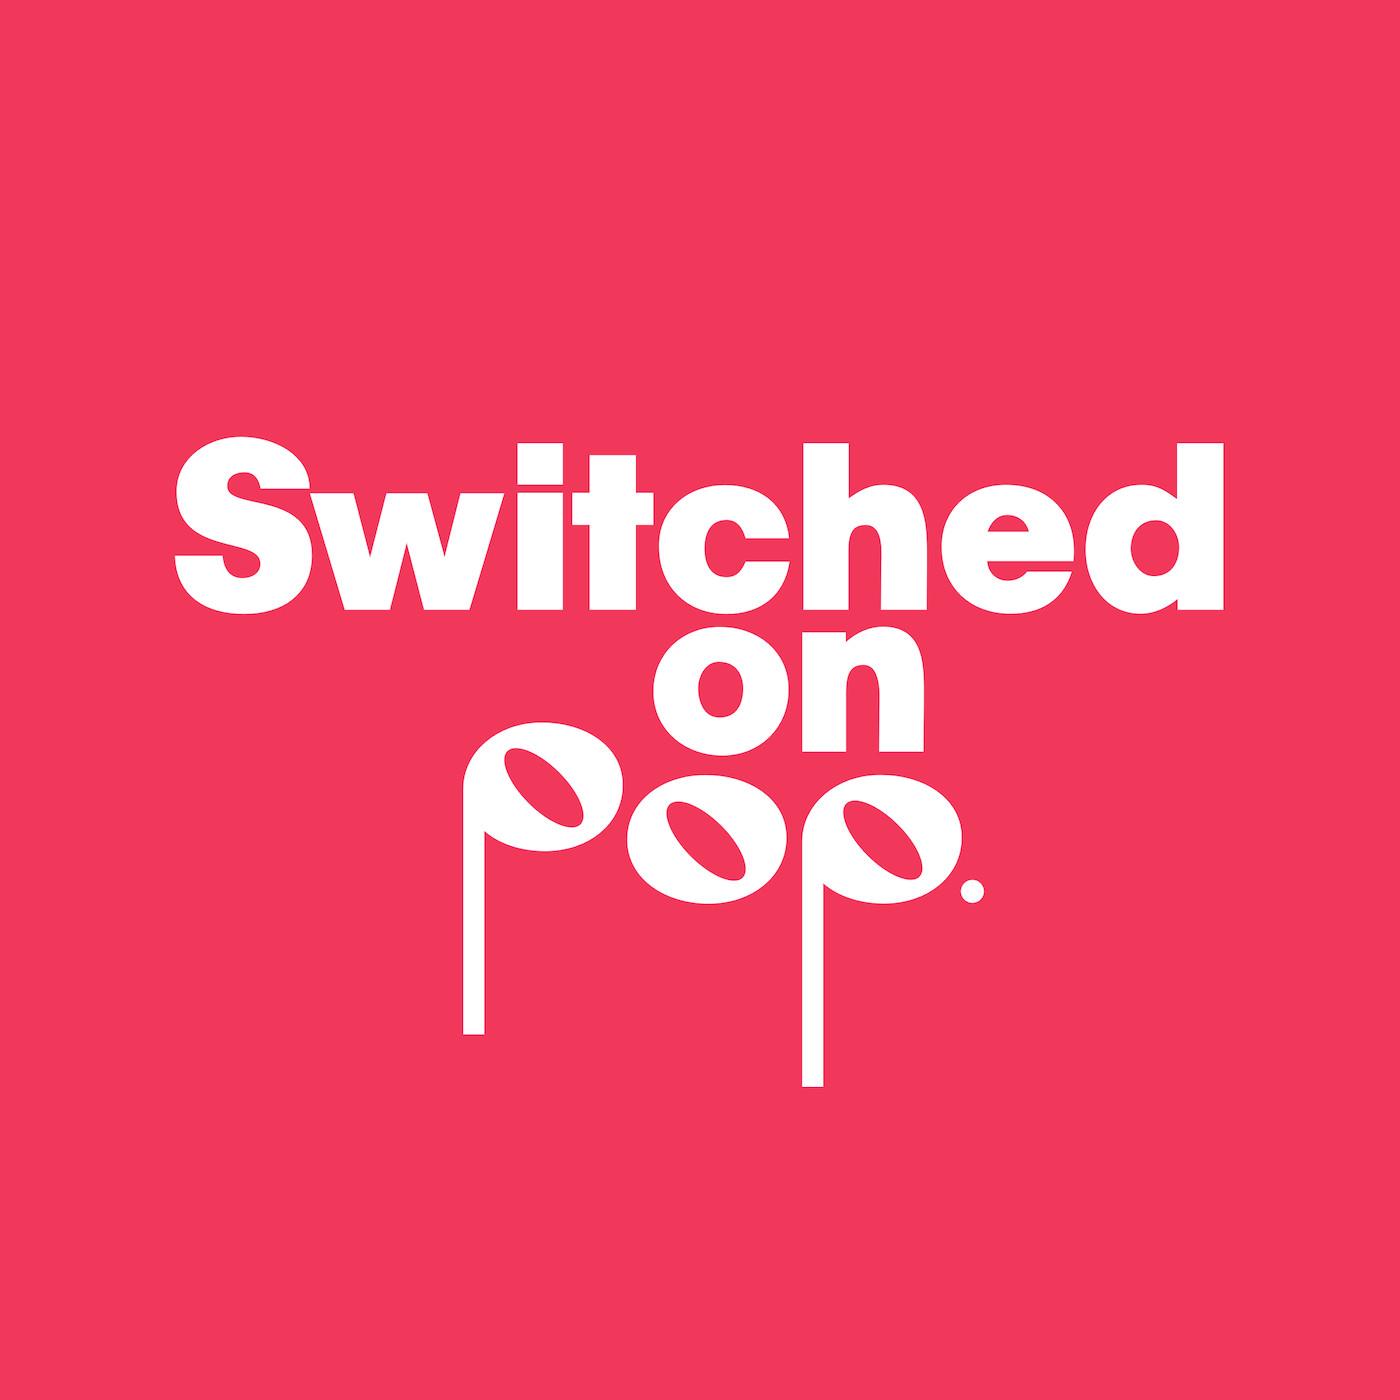 switched-on-pop